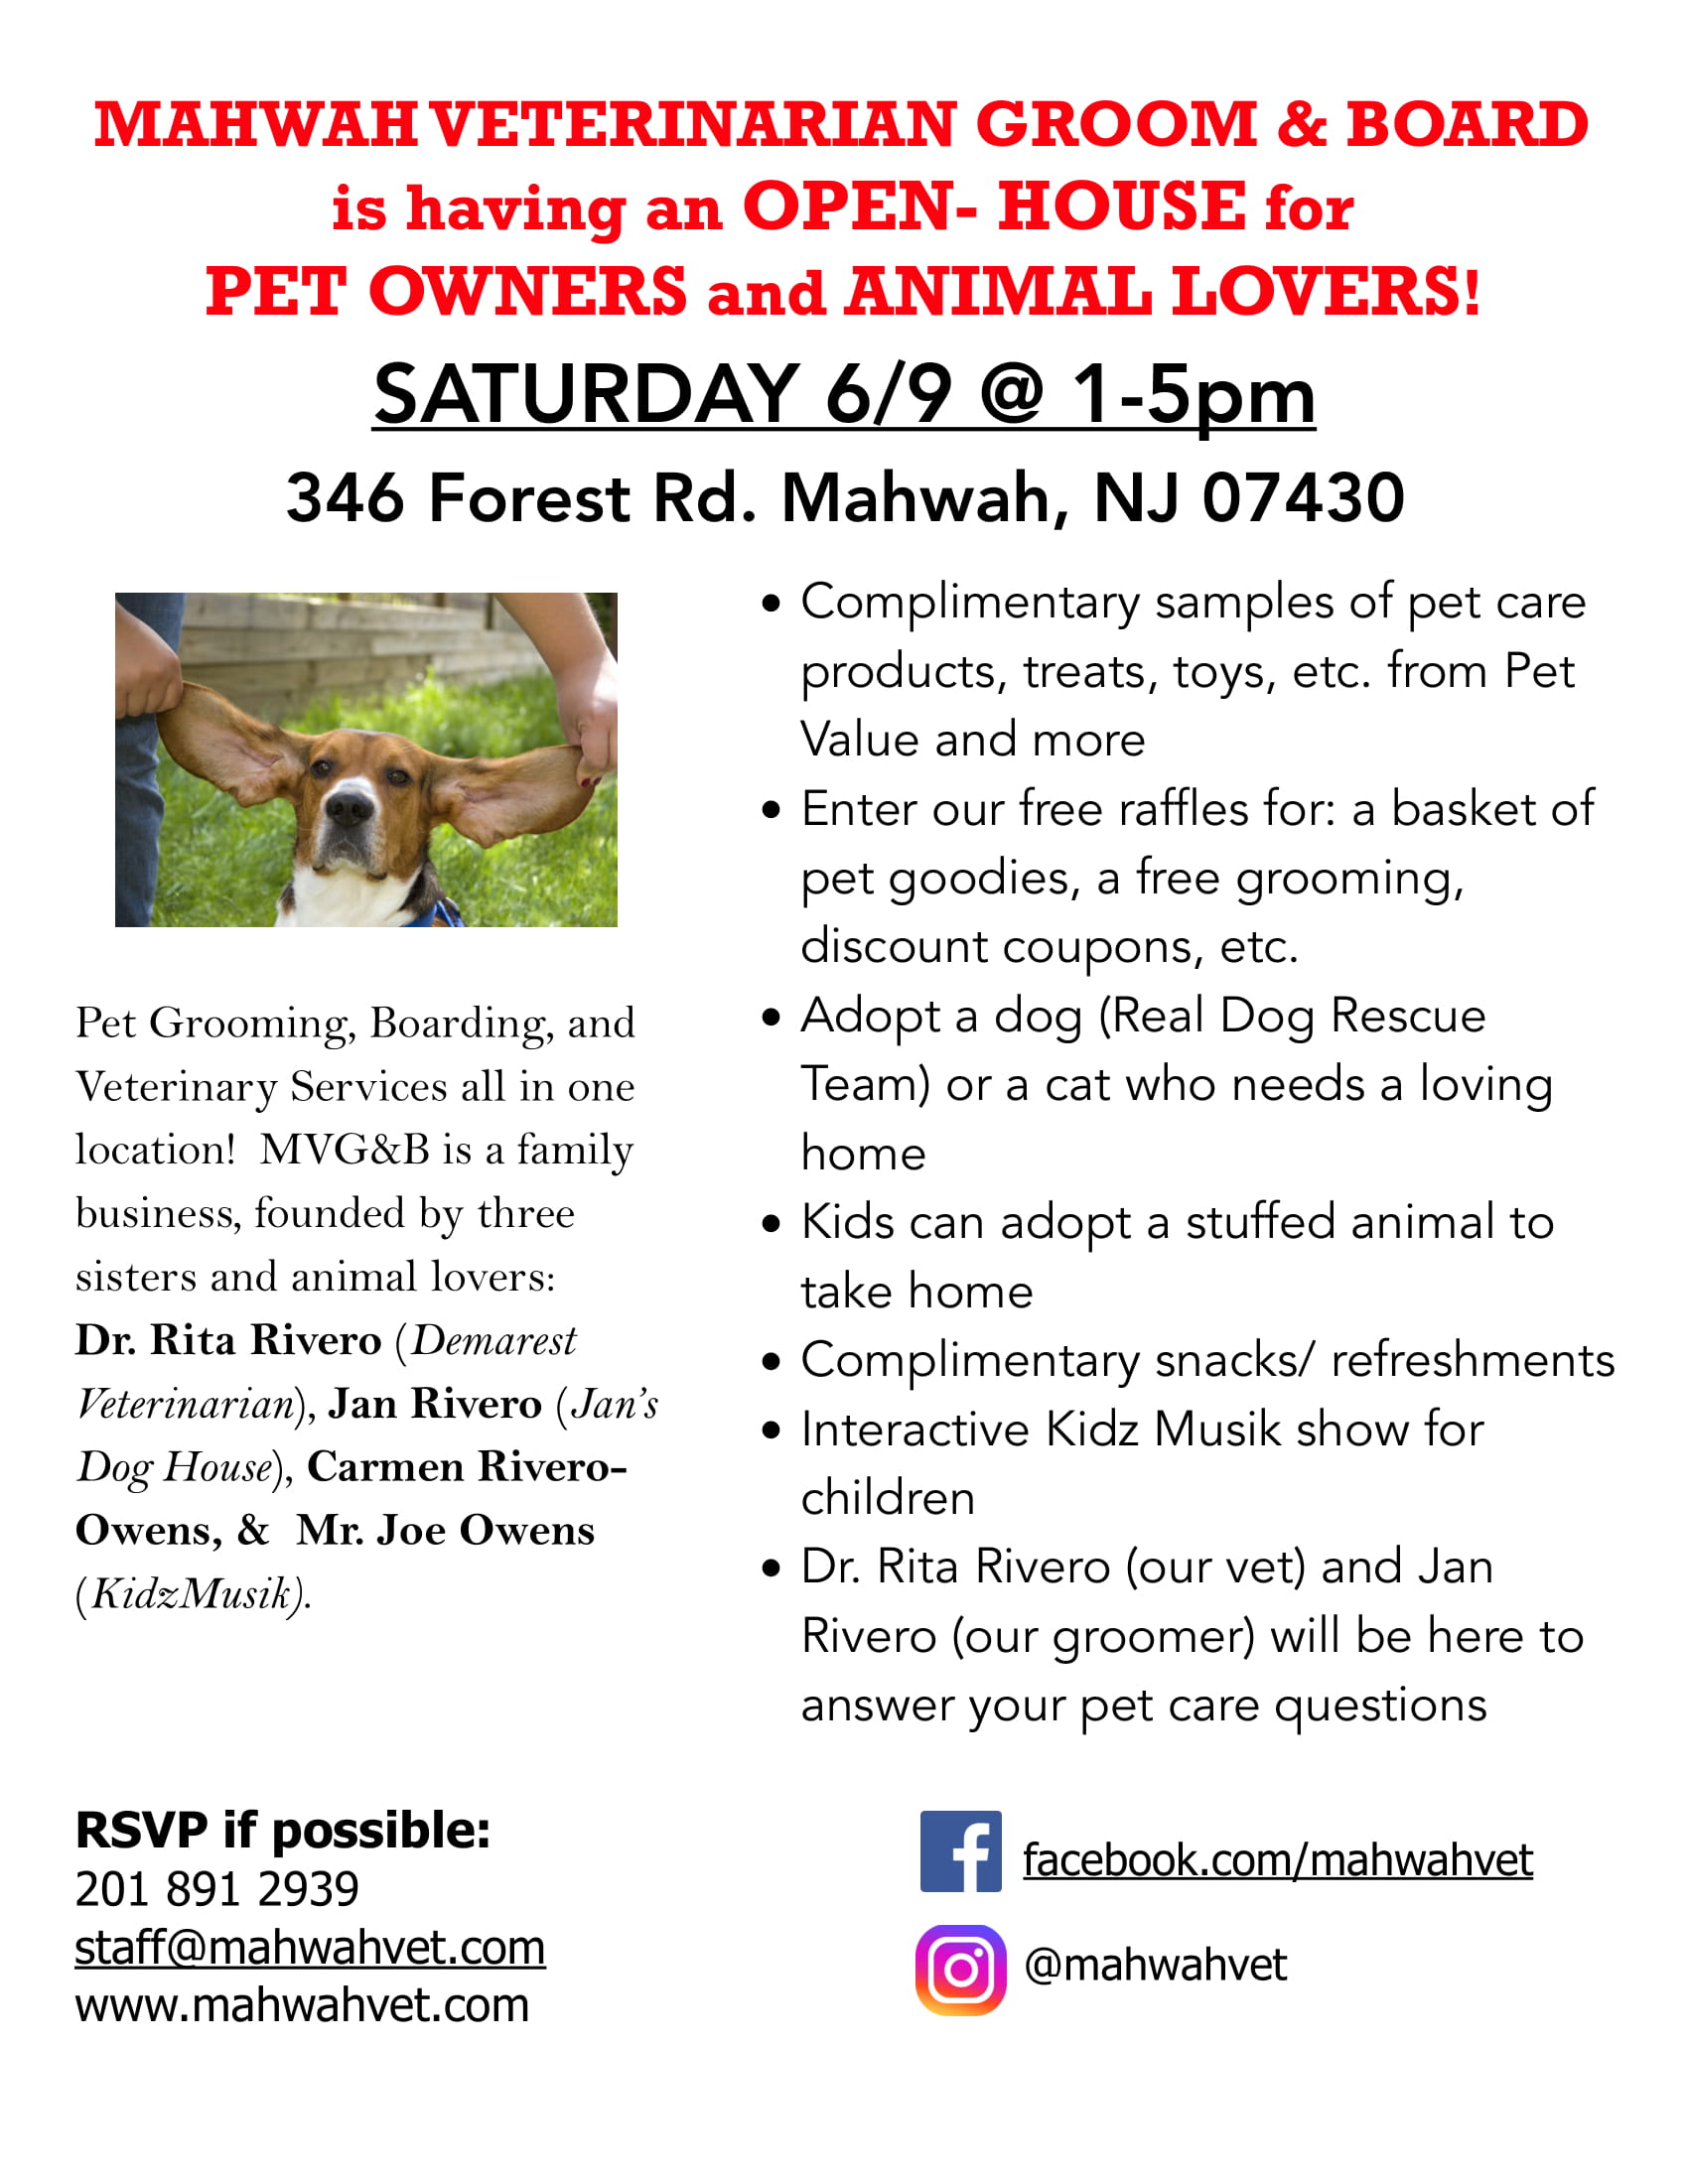 Open House for Pet Lovers! at Mahwah Veterinarian Groom & Board